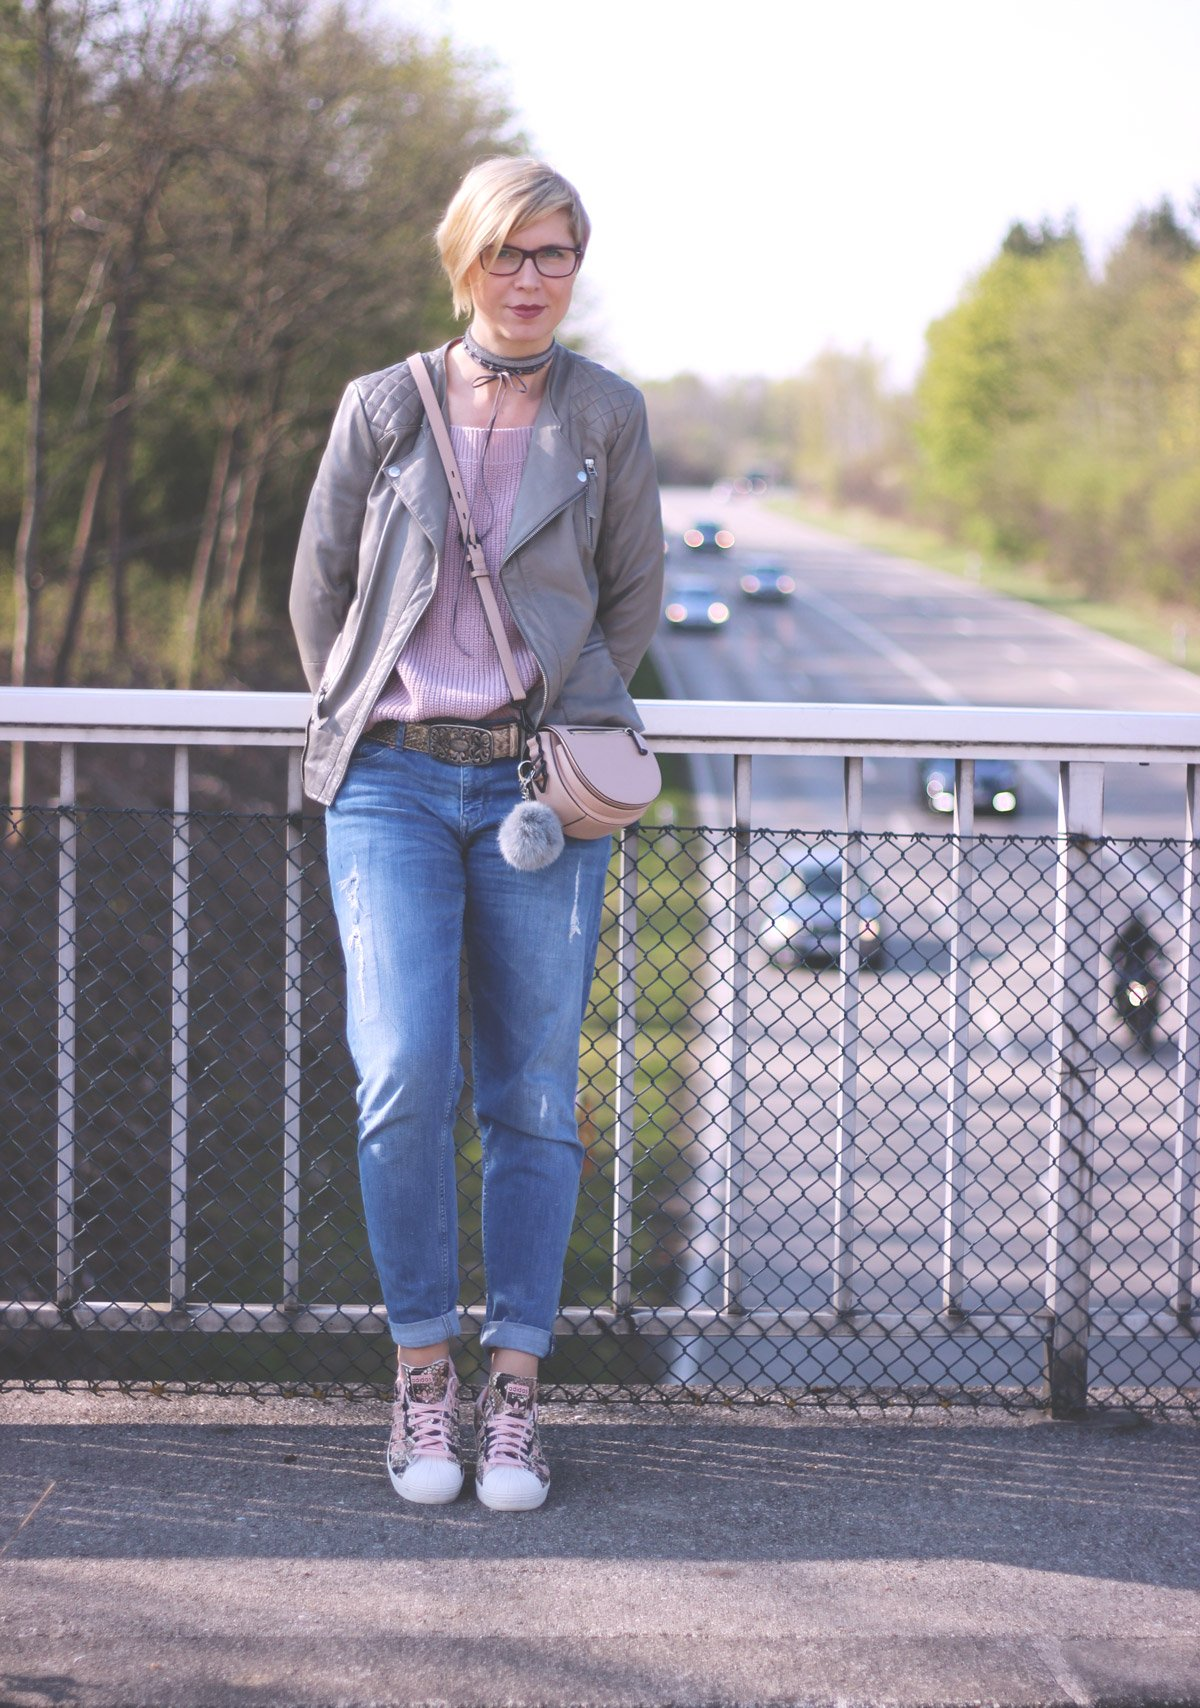 schulterfreien Pullover, rose, casual, conny doll, abends, tagsüber, Münchenblogger,